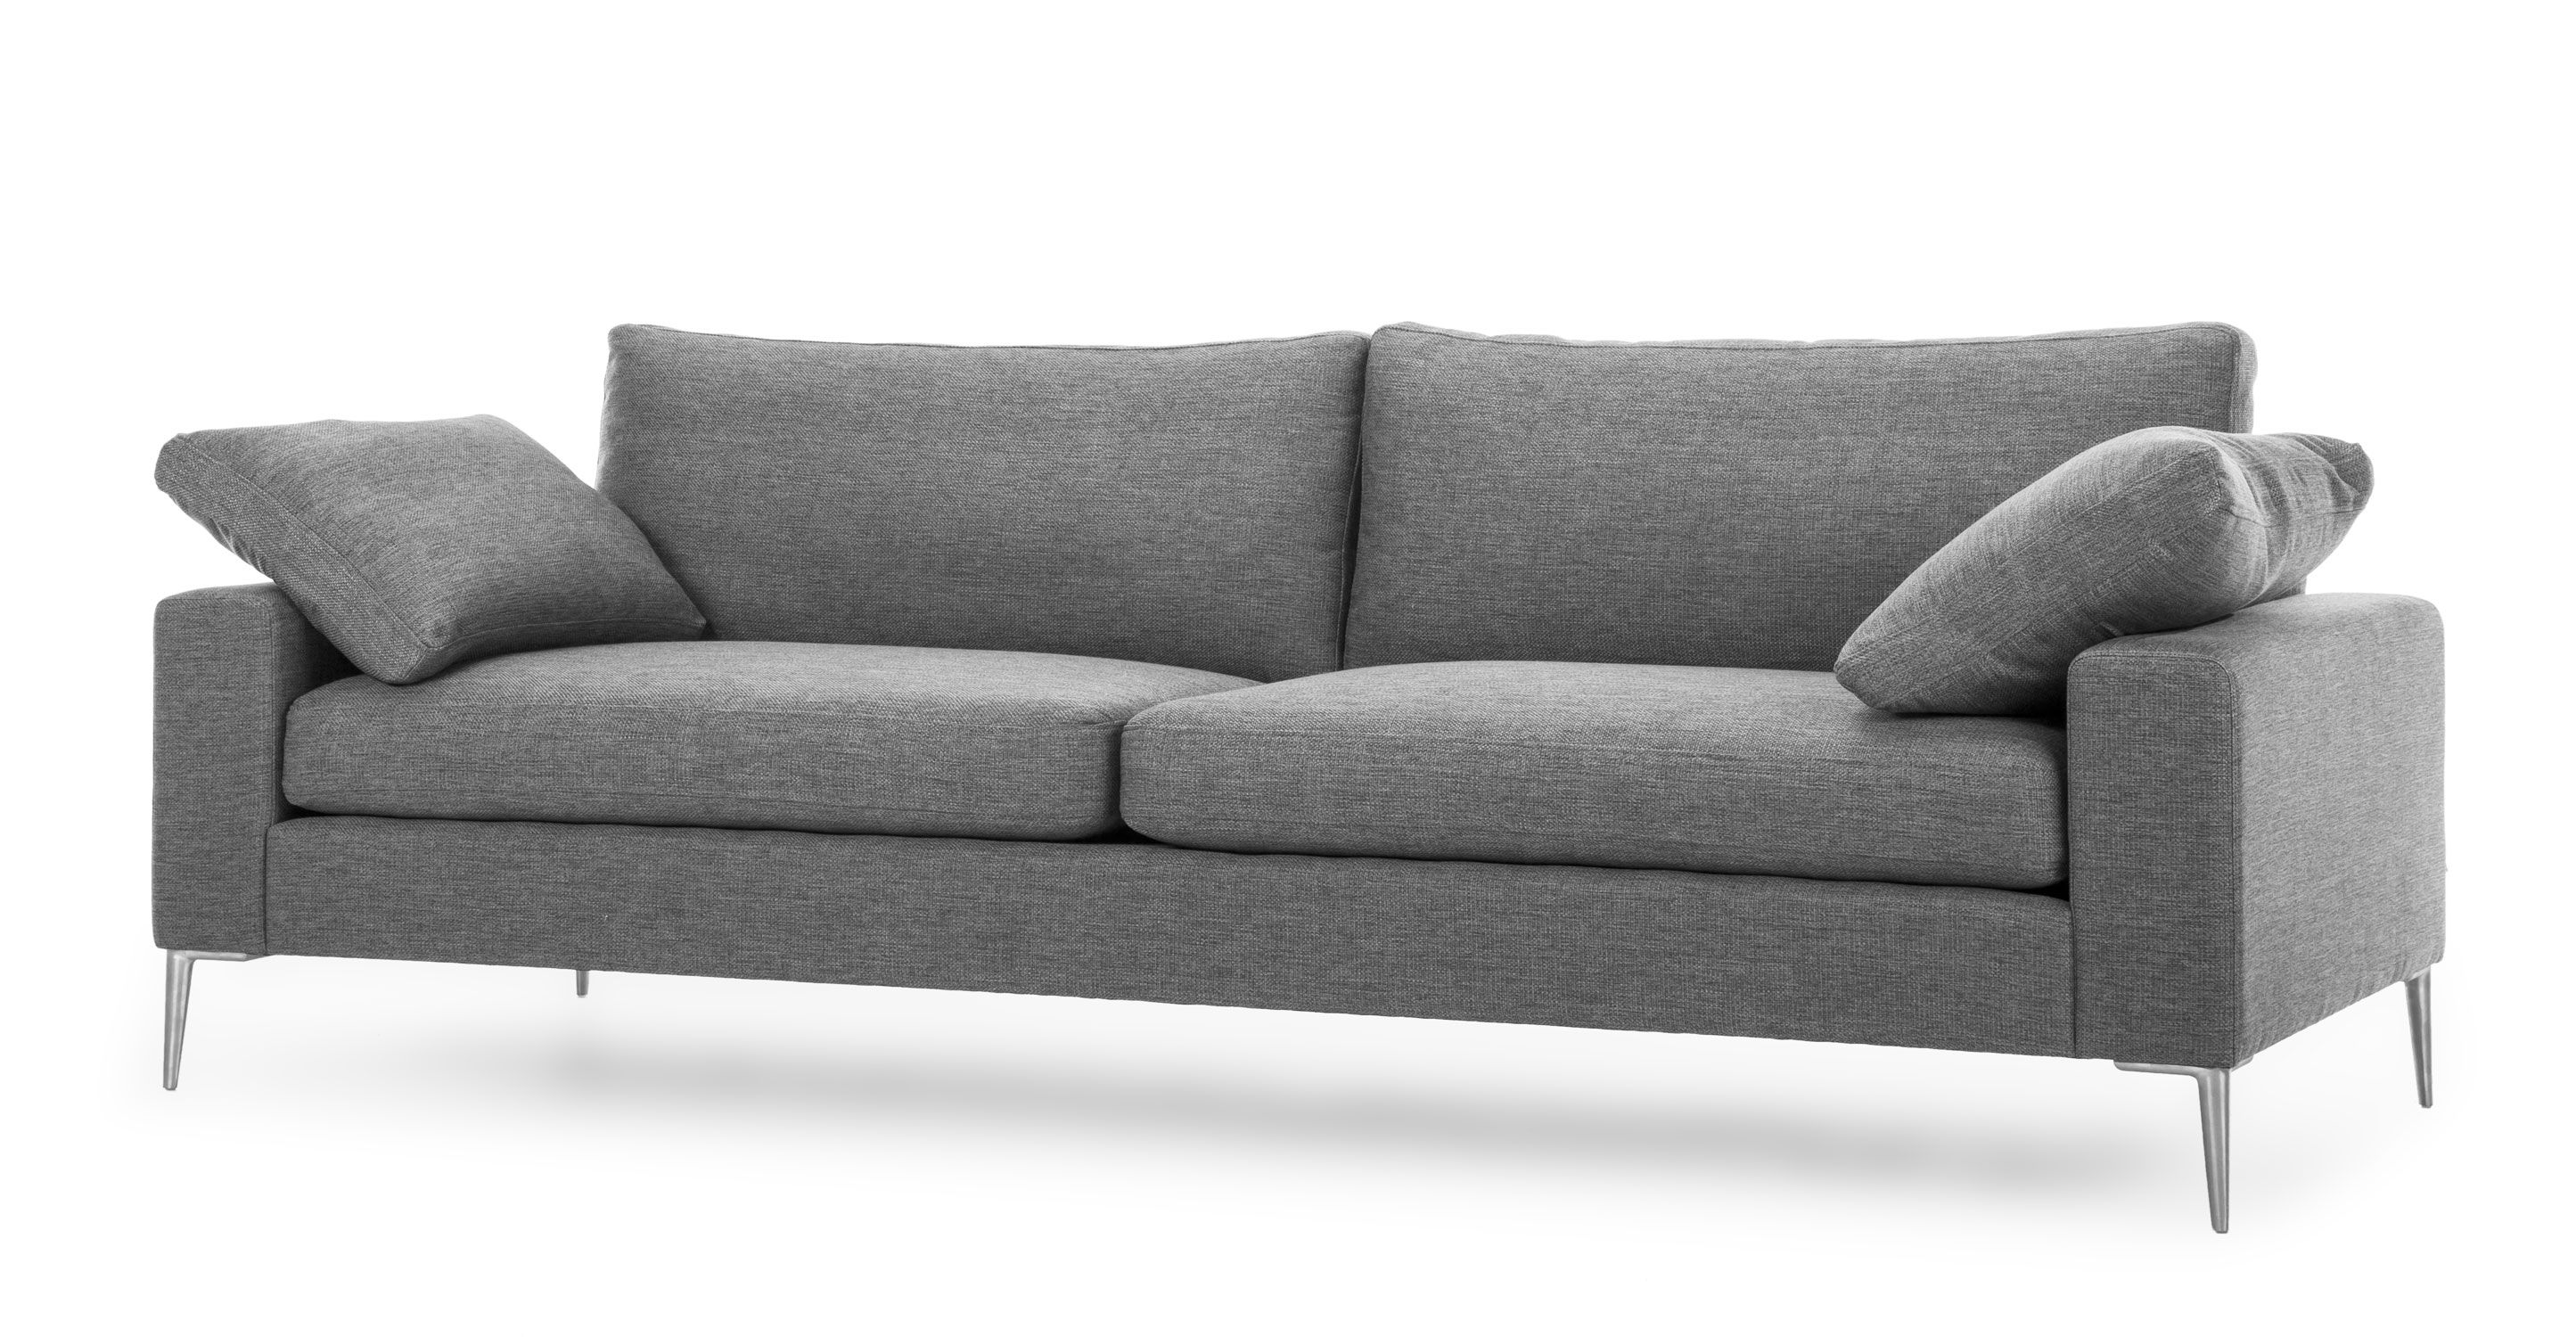 Exceptionnel Nova Gravel Gray Sofa   Sofas   Article | Modern, Mid Century And  Scandinavian